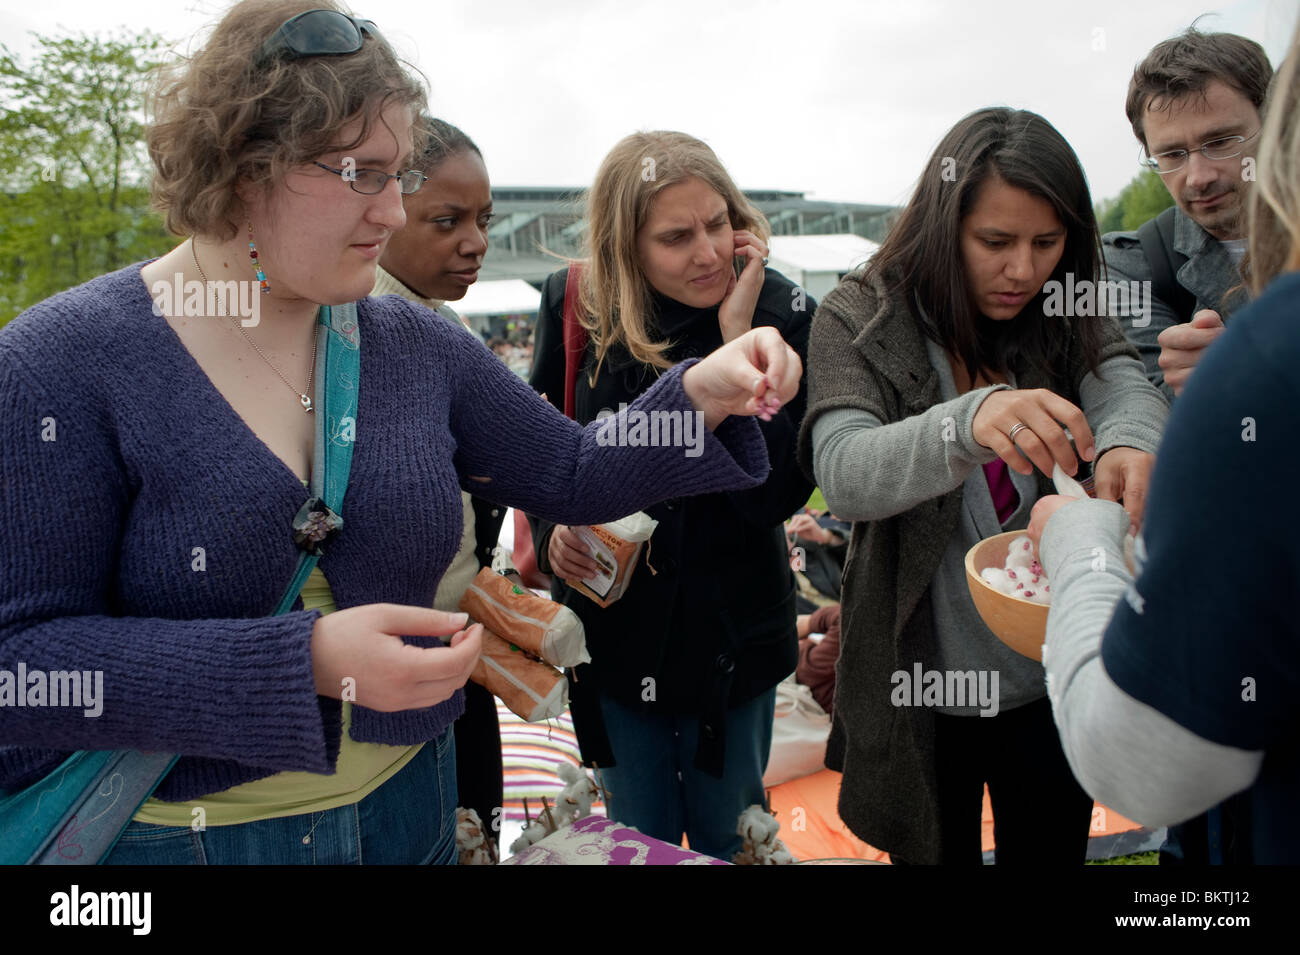 Celebration of World 'Fair Trade' Day, with People Taking Free Trade Cotton Samples on Lawn of La Villette - Stock Image